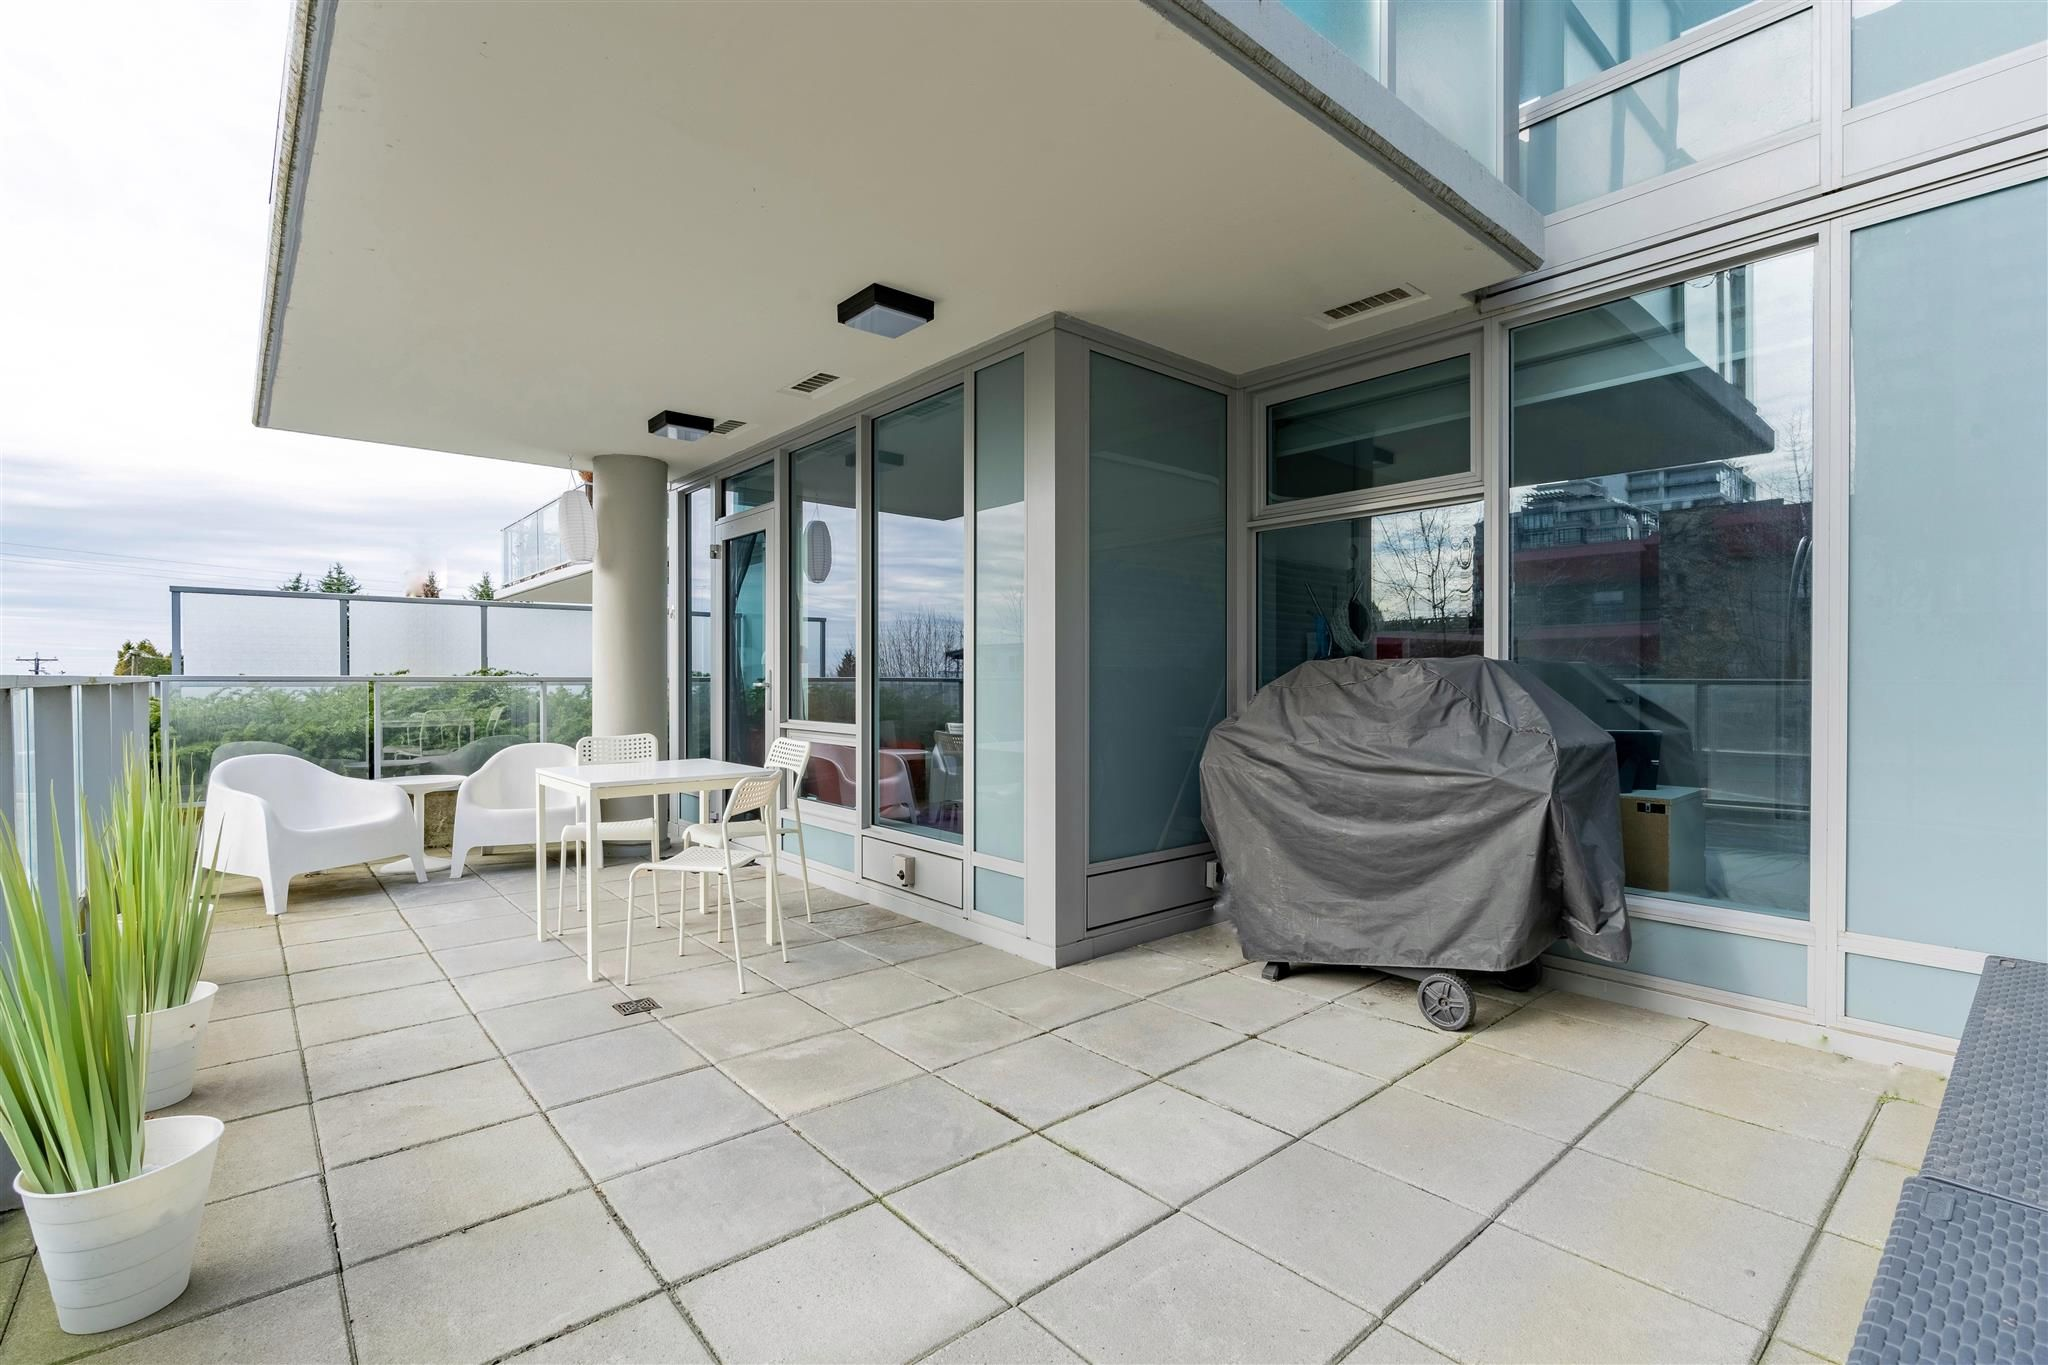 """Main Photo: 211 150 W 15TH Street in North Vancouver: Central Lonsdale Condo for sale in """"15 WEST"""" : MLS®# R2597061"""